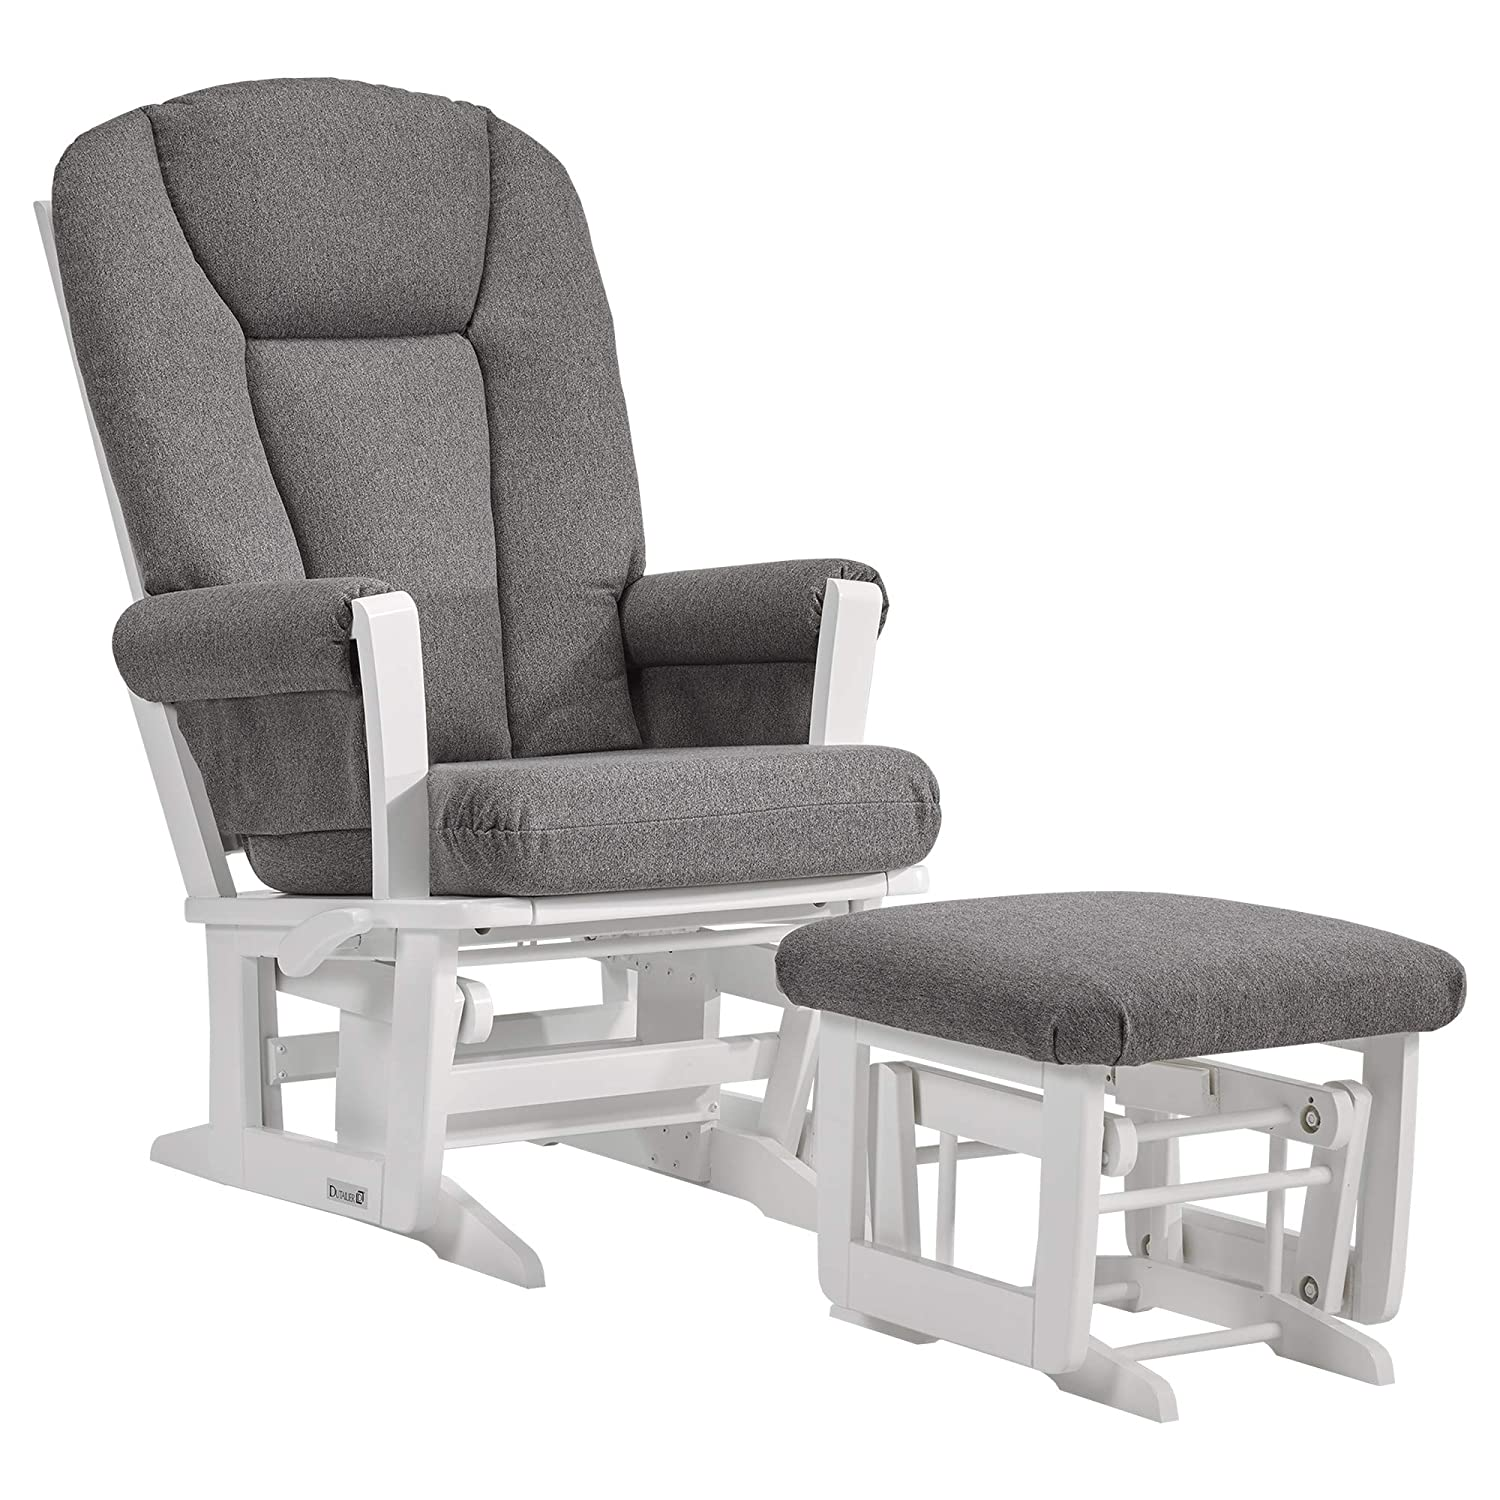 Dutailier Ruby Be super welcome 0388 Limited time sale Glider Recline Multiposition-lock with Ottom